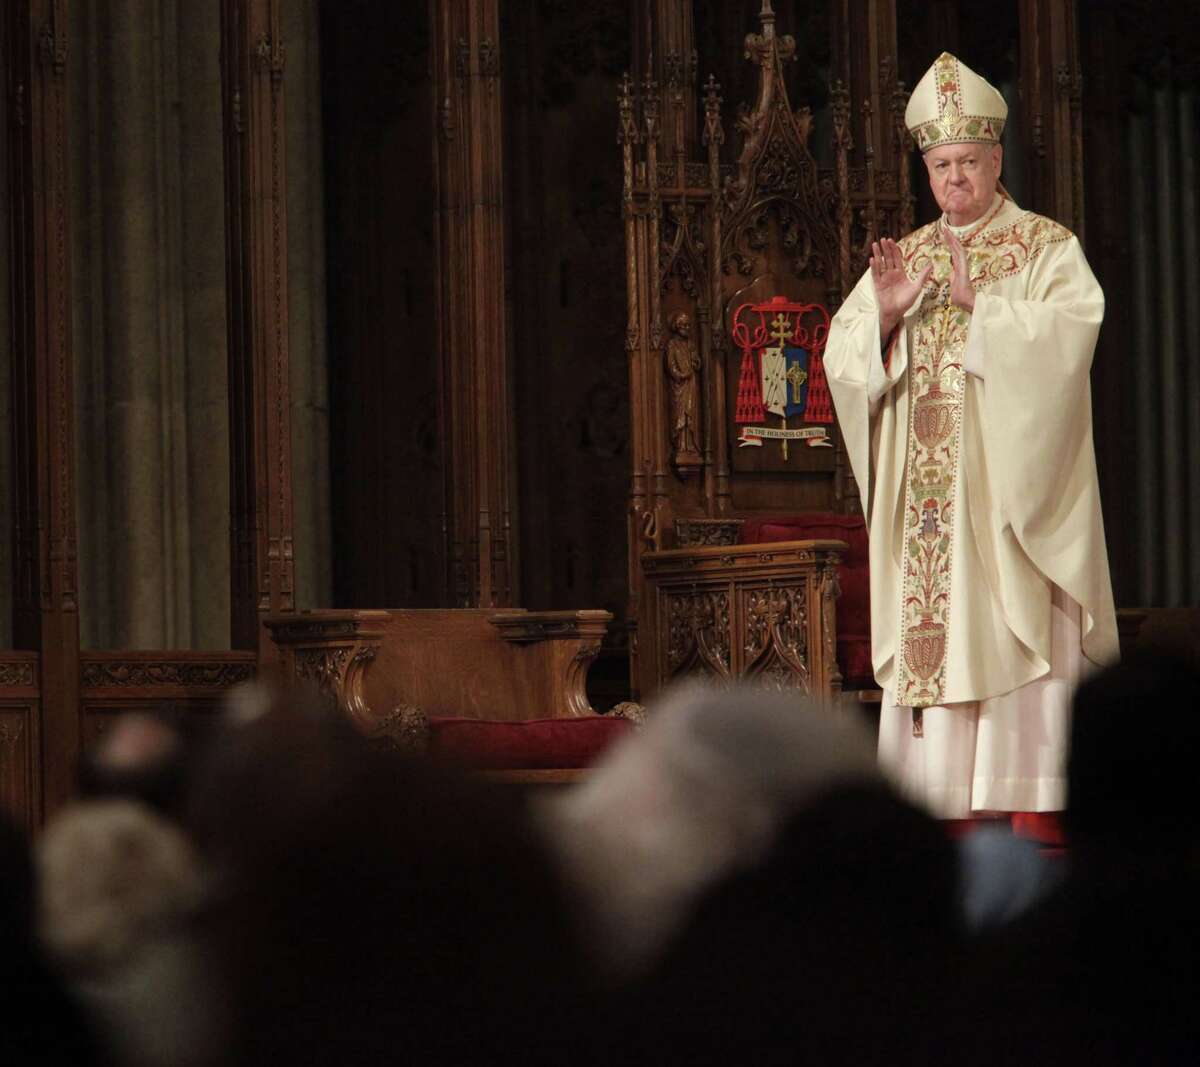 FILE- In this April 12, 2009 file photo, Cardinal Edward Egan receives a standing ovation after speaking to worshipers during Easter Mass in New York. Egan, the former archbishop of New York, died of cardiac arrest Thursday, March 5, 2015, in New York. He was 82.